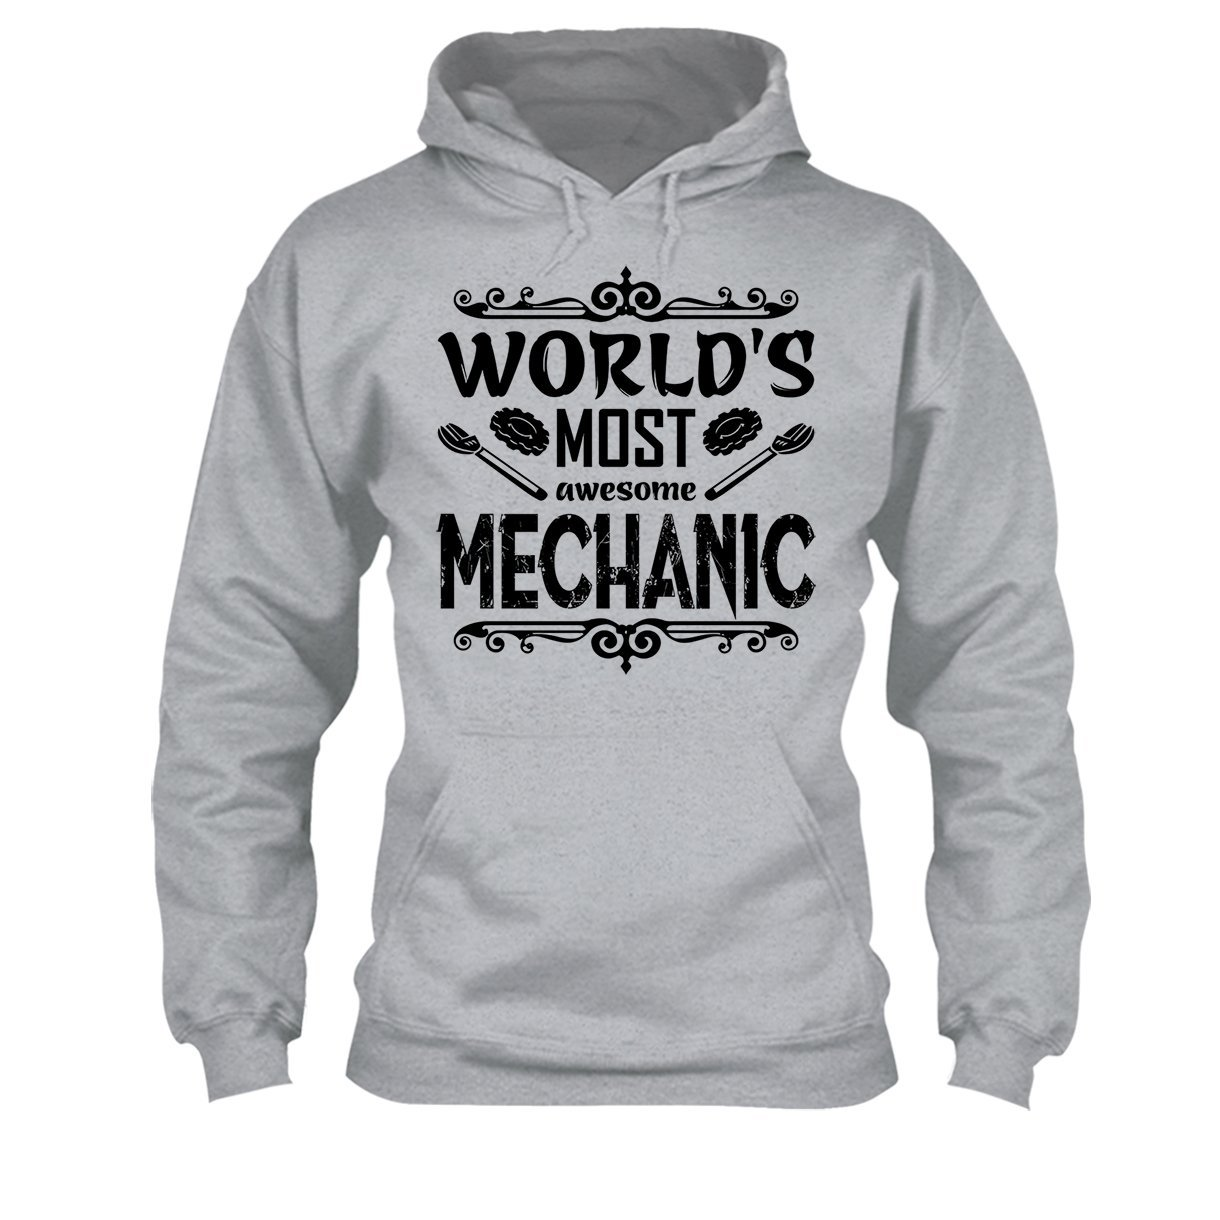 Tee Shirt Clothing Big Grey Worlds Most Awesome Mechanic Shirt